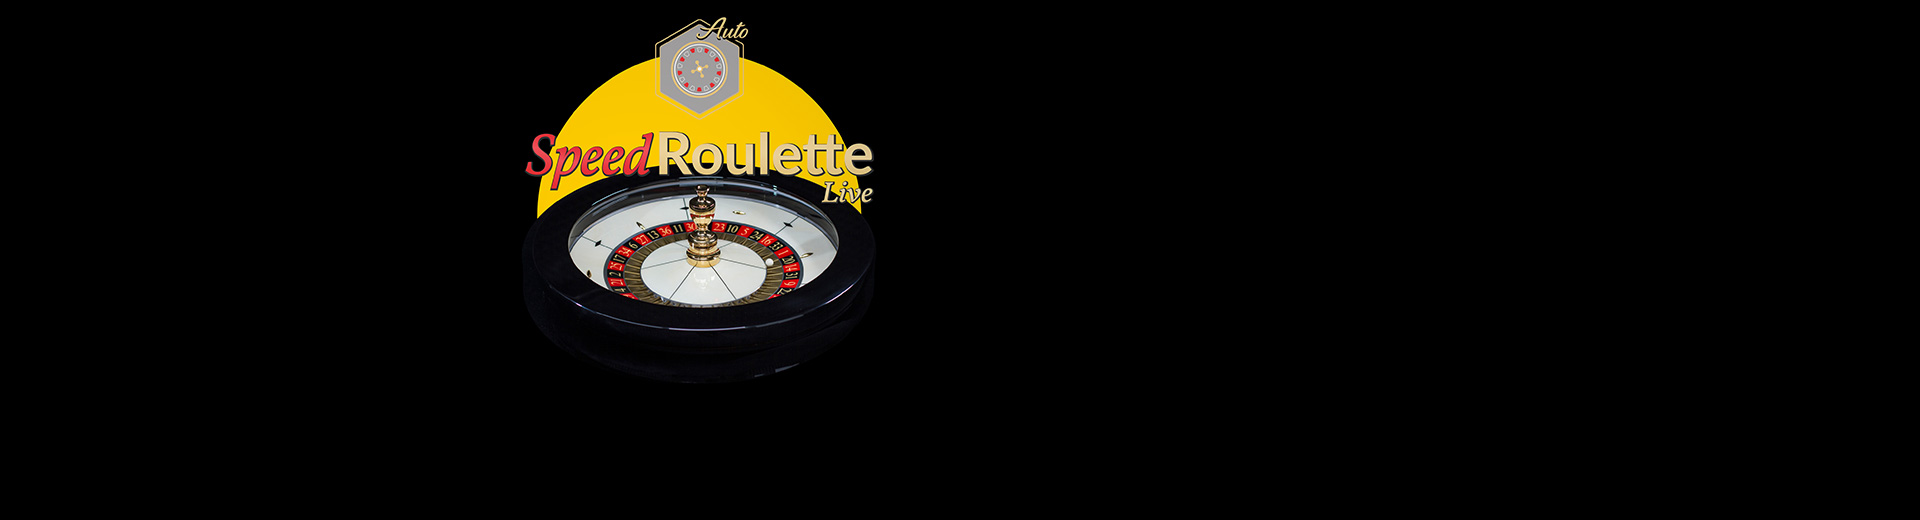 C10-1920x520_2338_2018_Speed Auto Roulette_Evolution